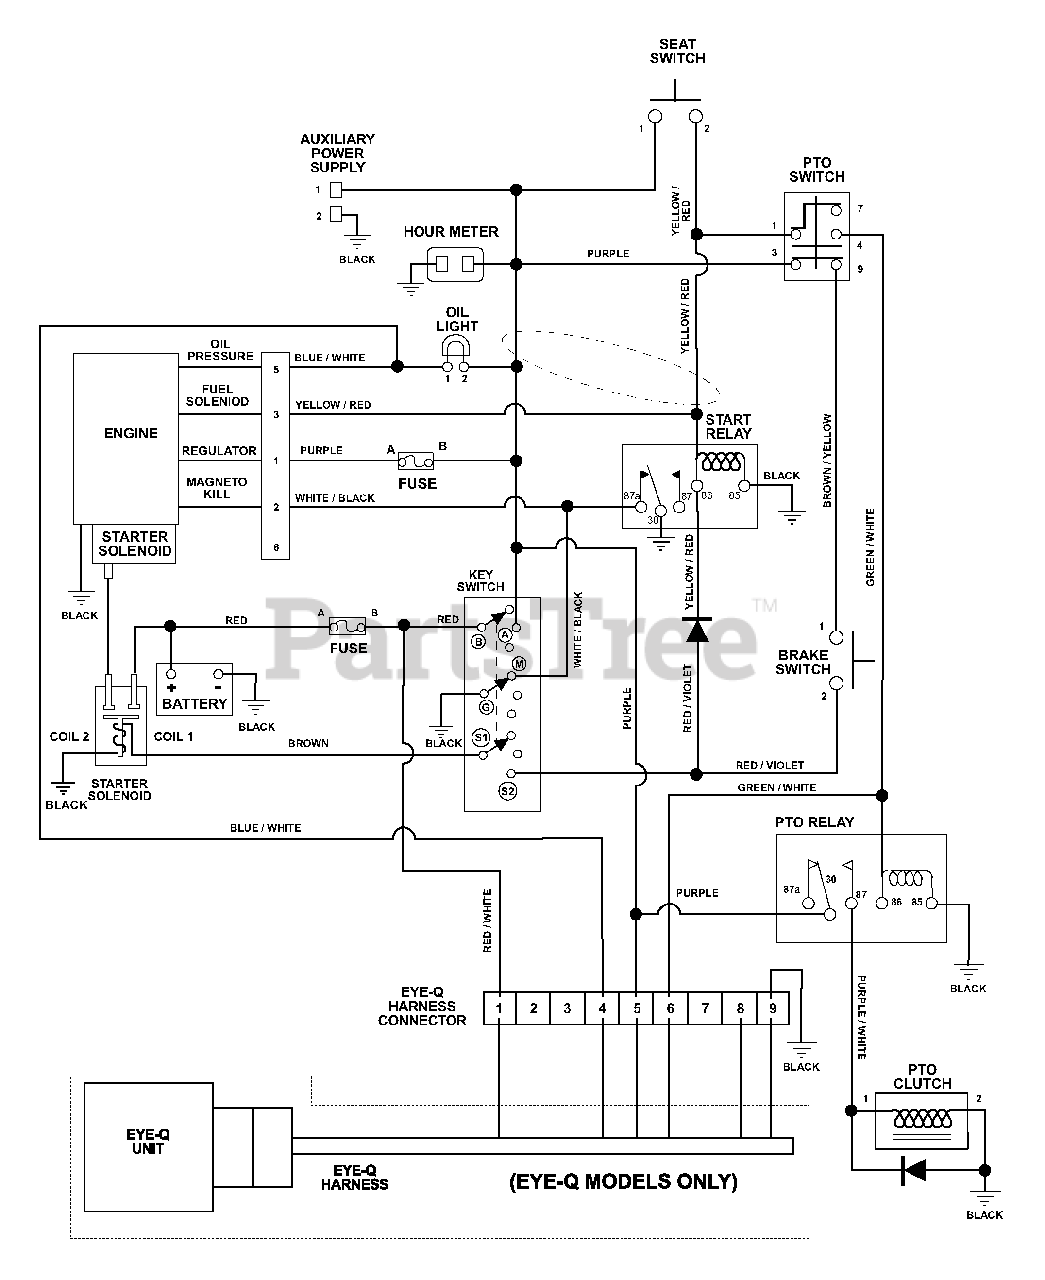 Wiring Diagram PDF: 17 Hp Kawasaki Wiring Diagram